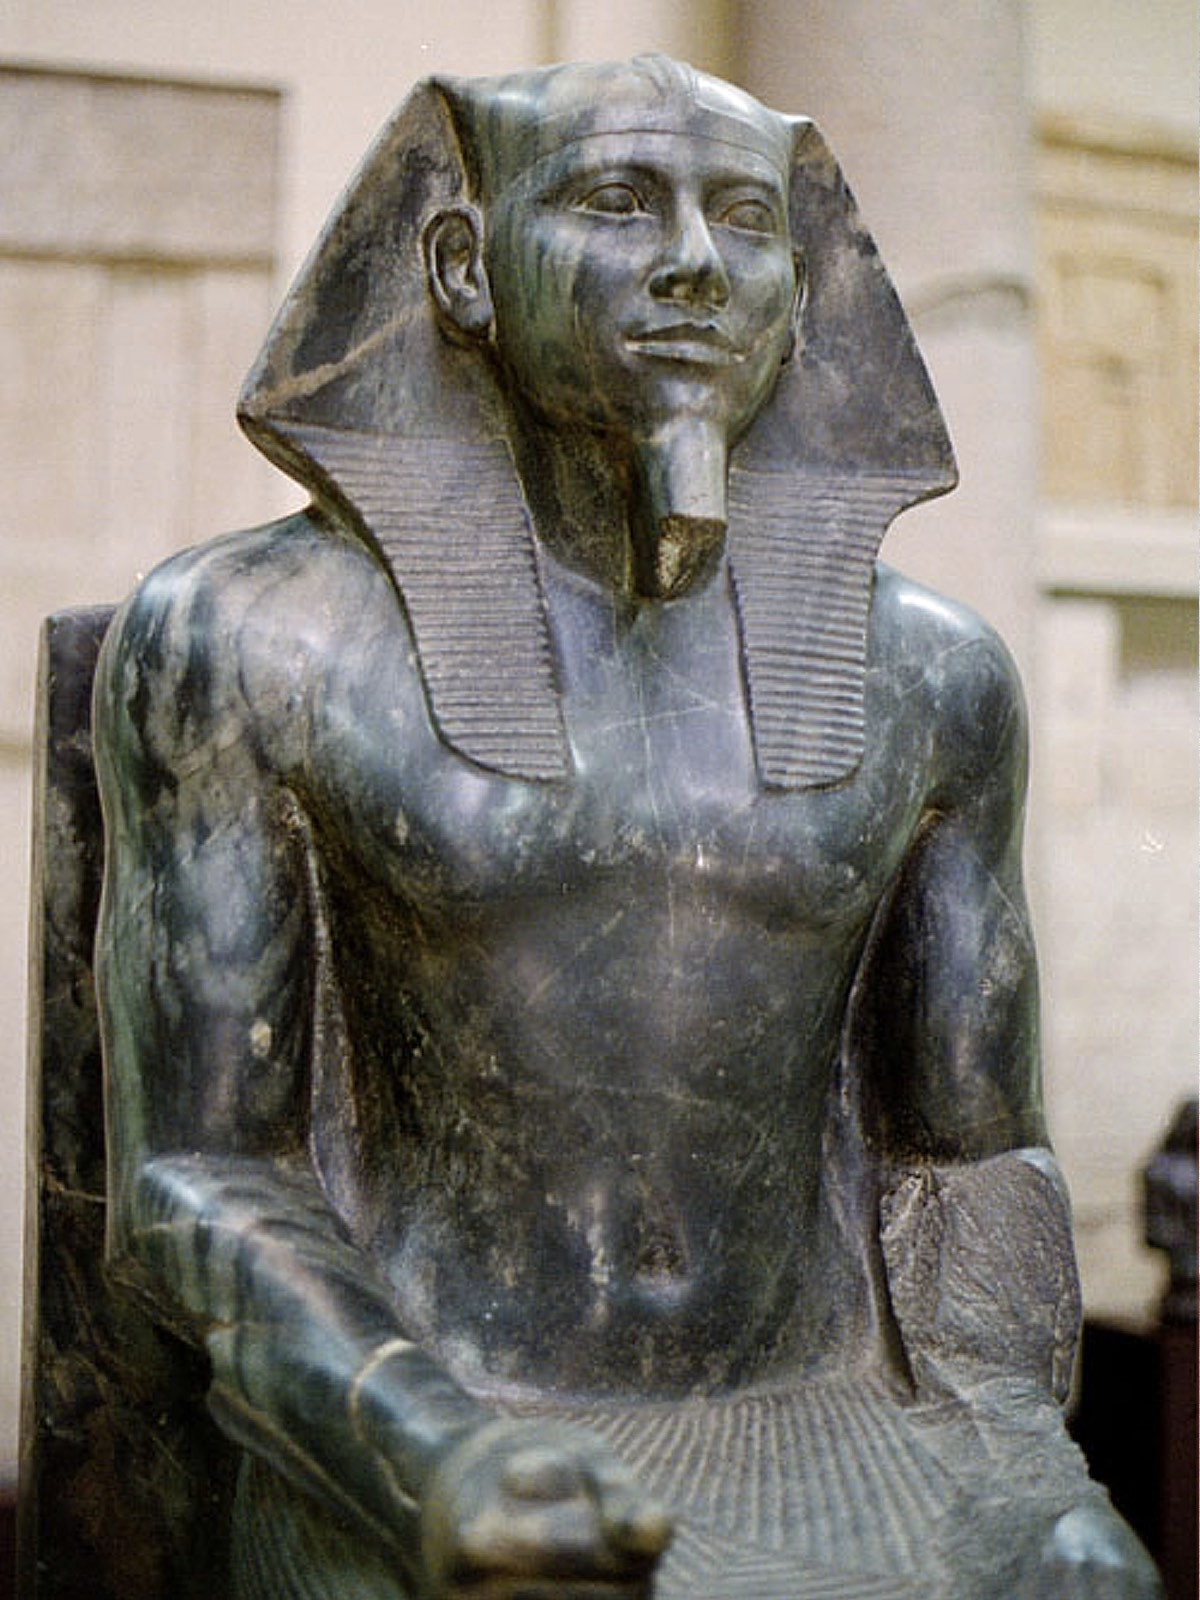 A statue of the pharaoh Khafre in the Cairo Museum (credit: Jon Bodsworth)